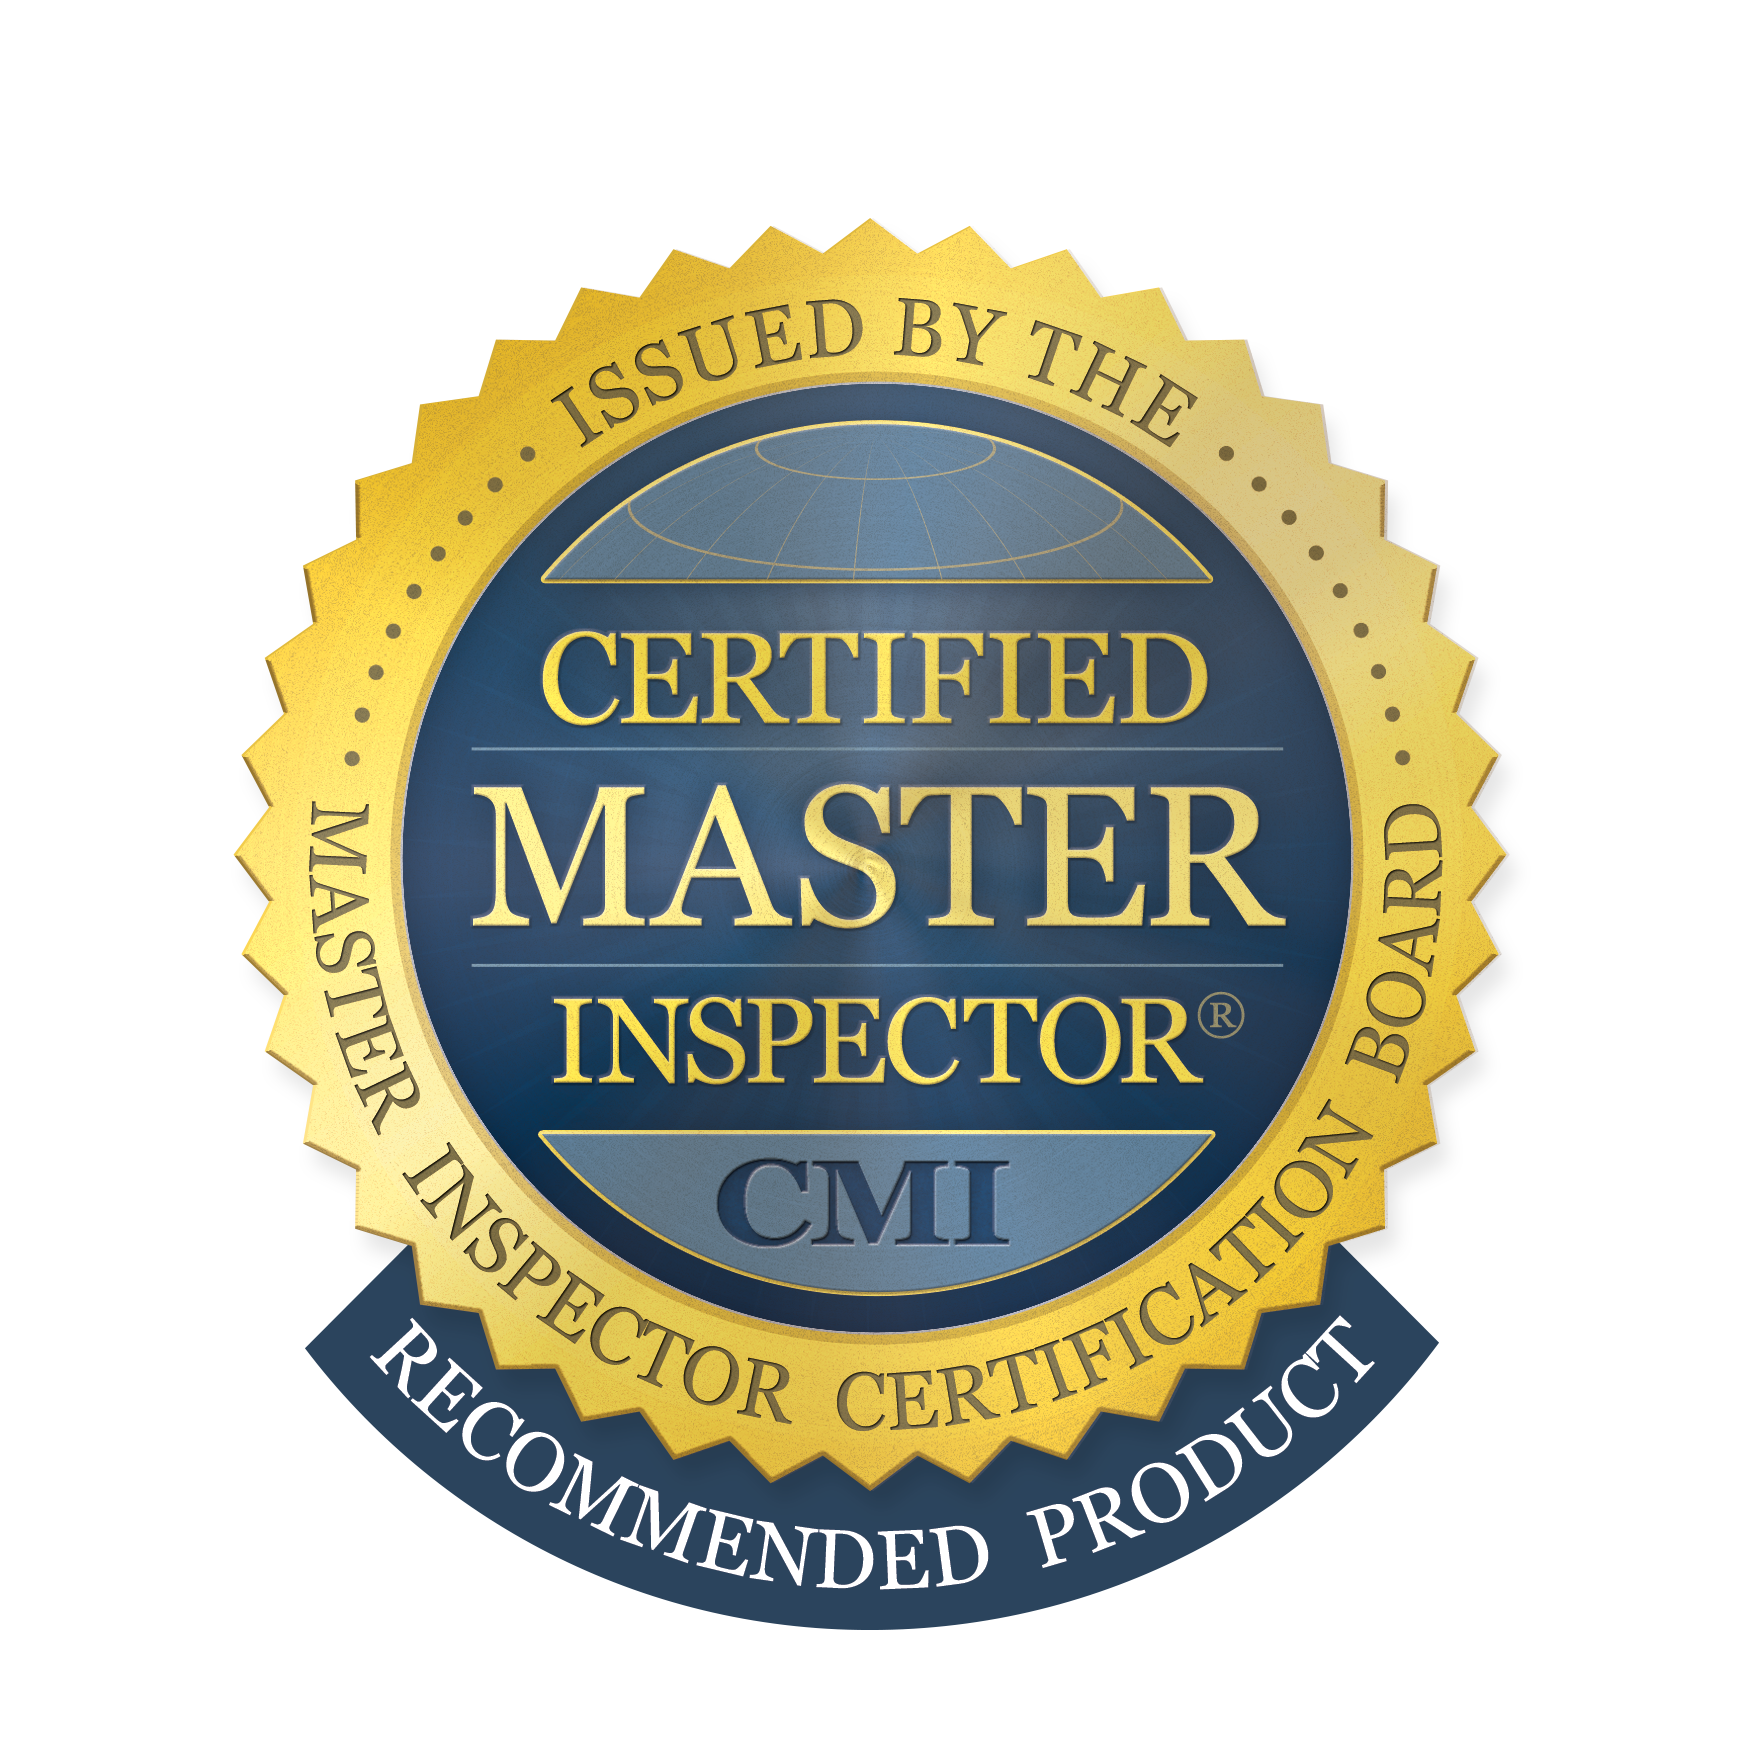 The Best Inspection Products And Services Certified Master Inspector